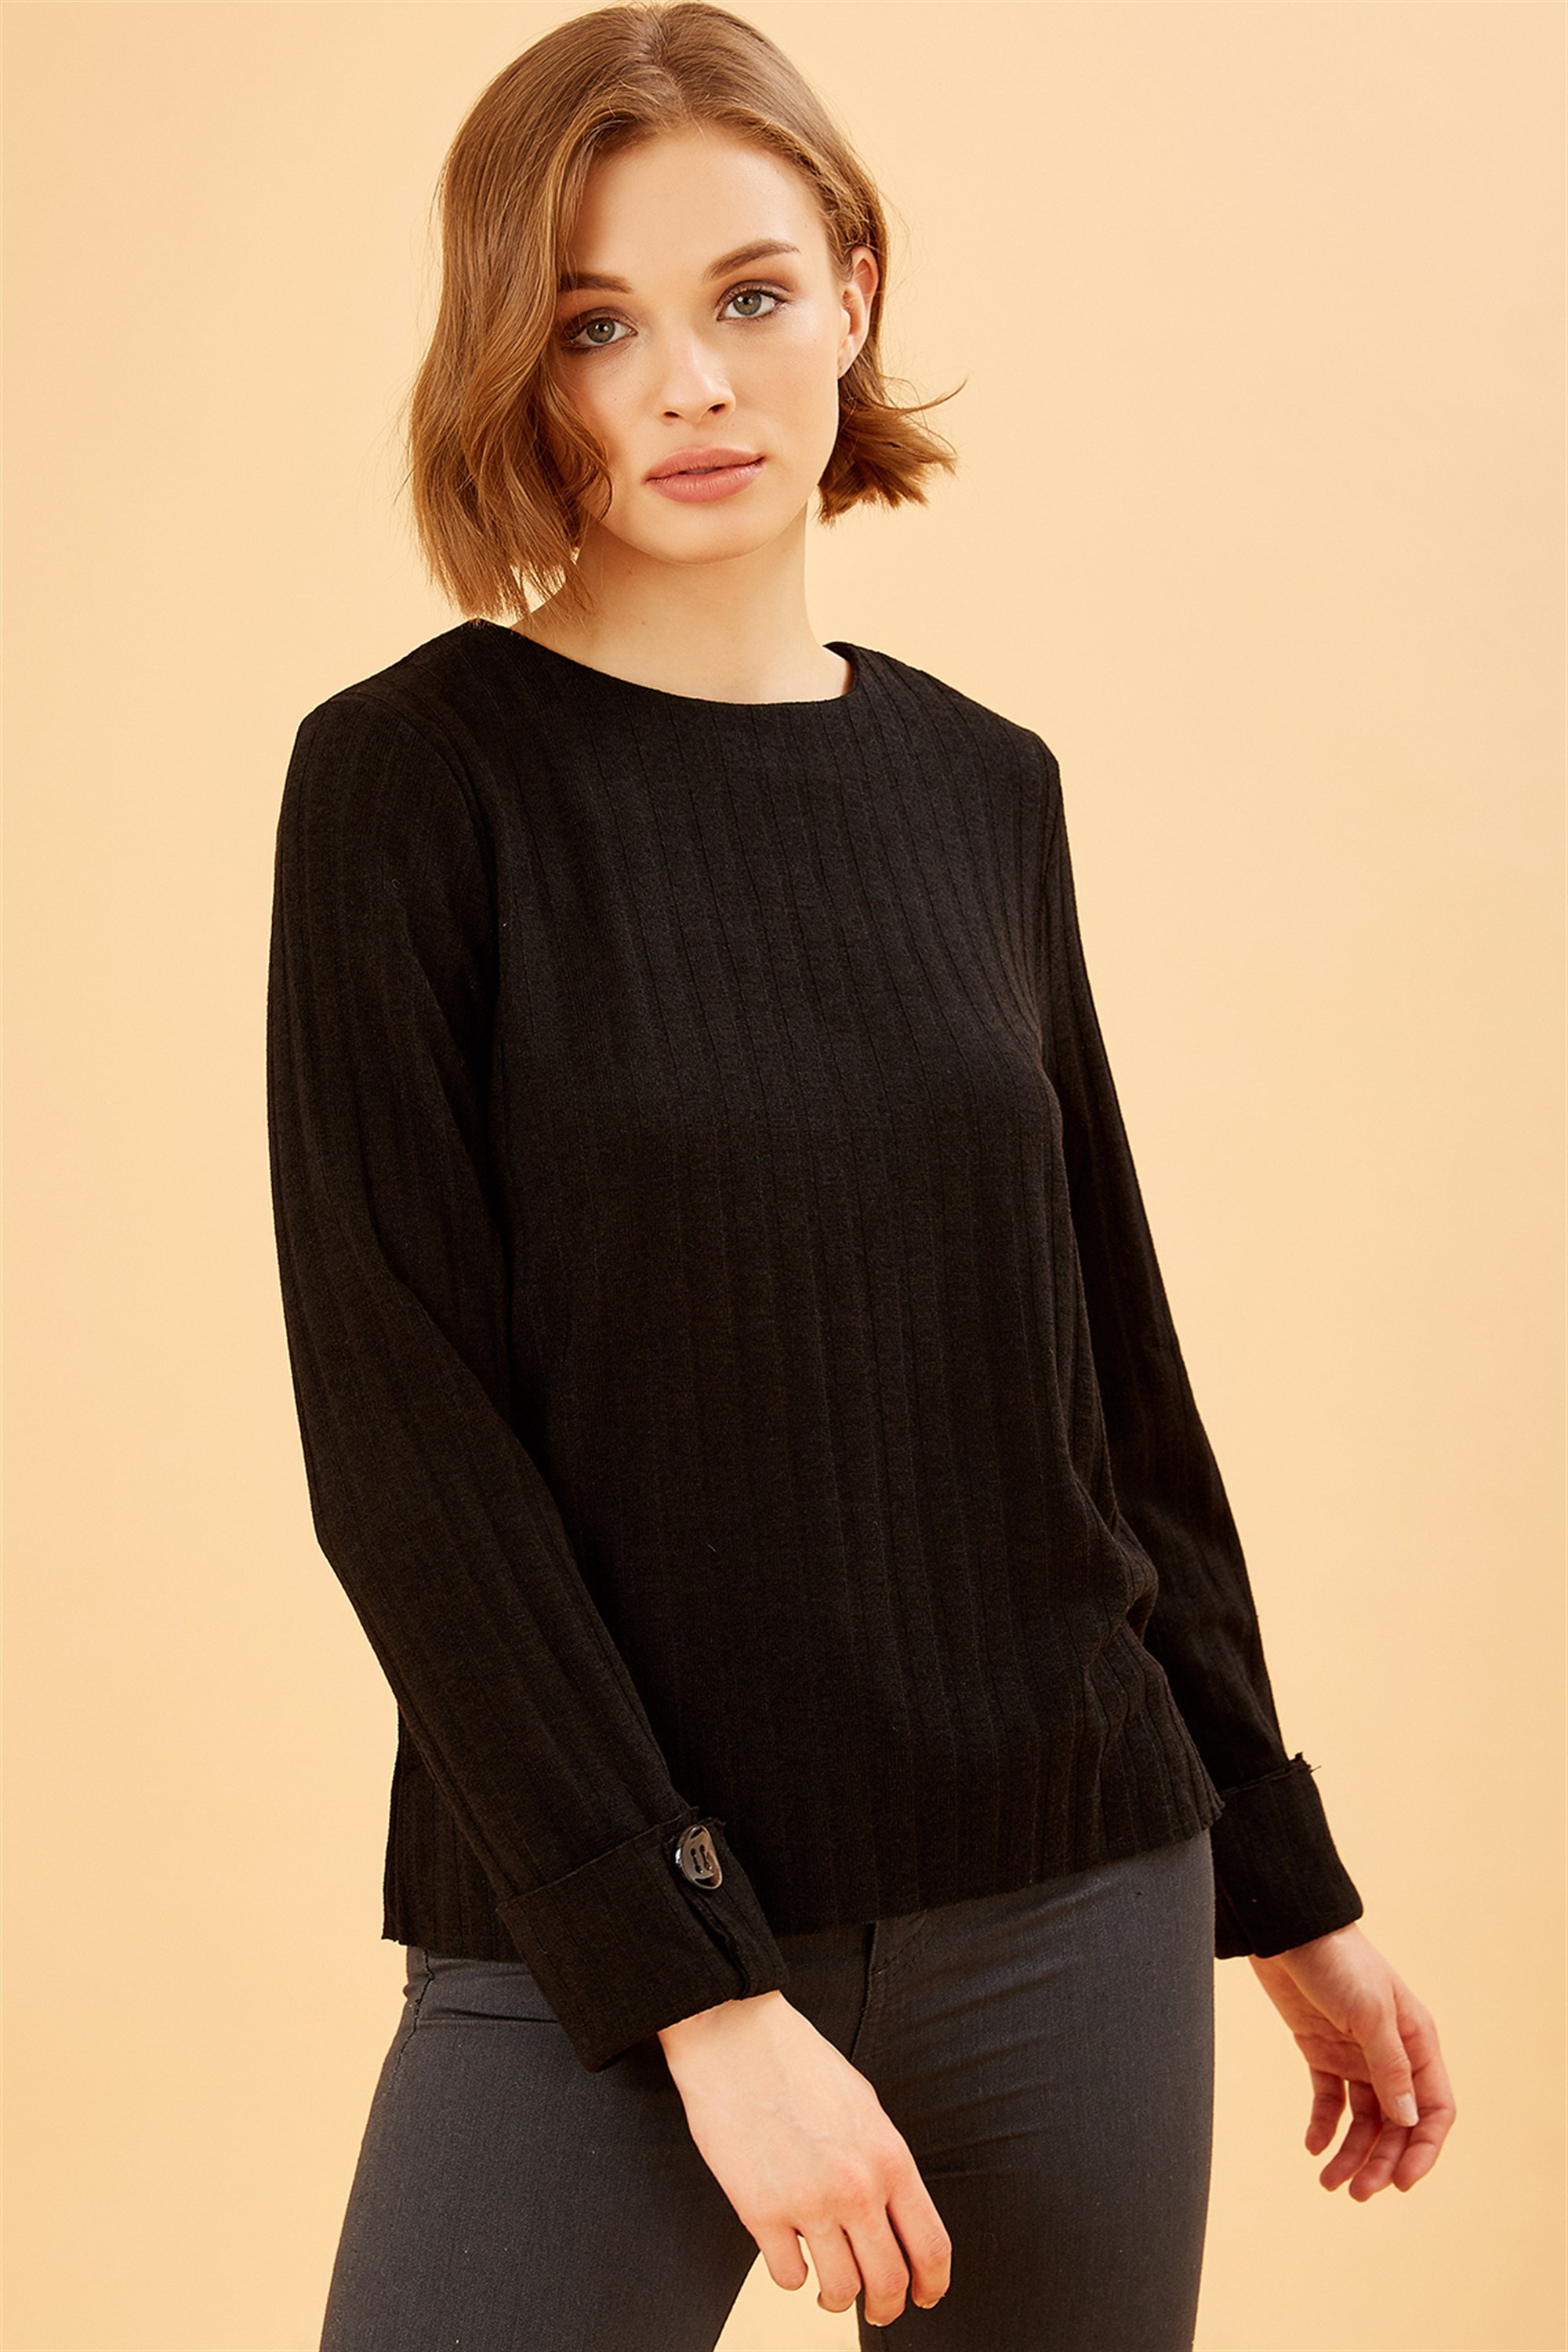 Back and Handle Button Detailed Black Striped Woven Sweater